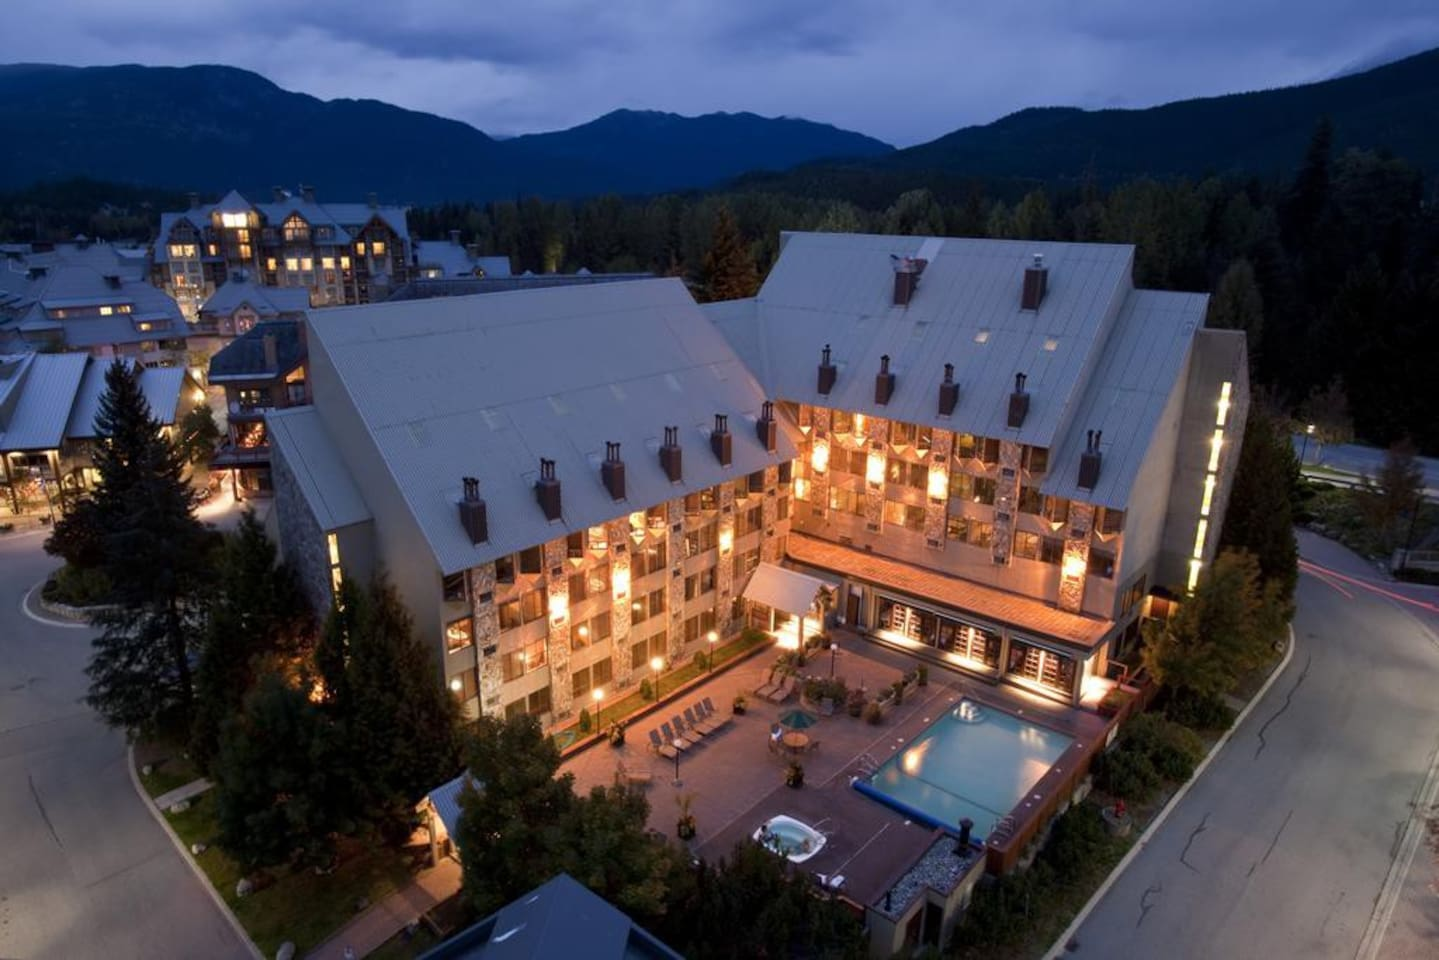 Pool, Jacuzzi, back of building, faces Whistler and Blackcomb  Photos are from Mountainside Lodge website. Each room will have slightly different decor.  The amenities are all the same.